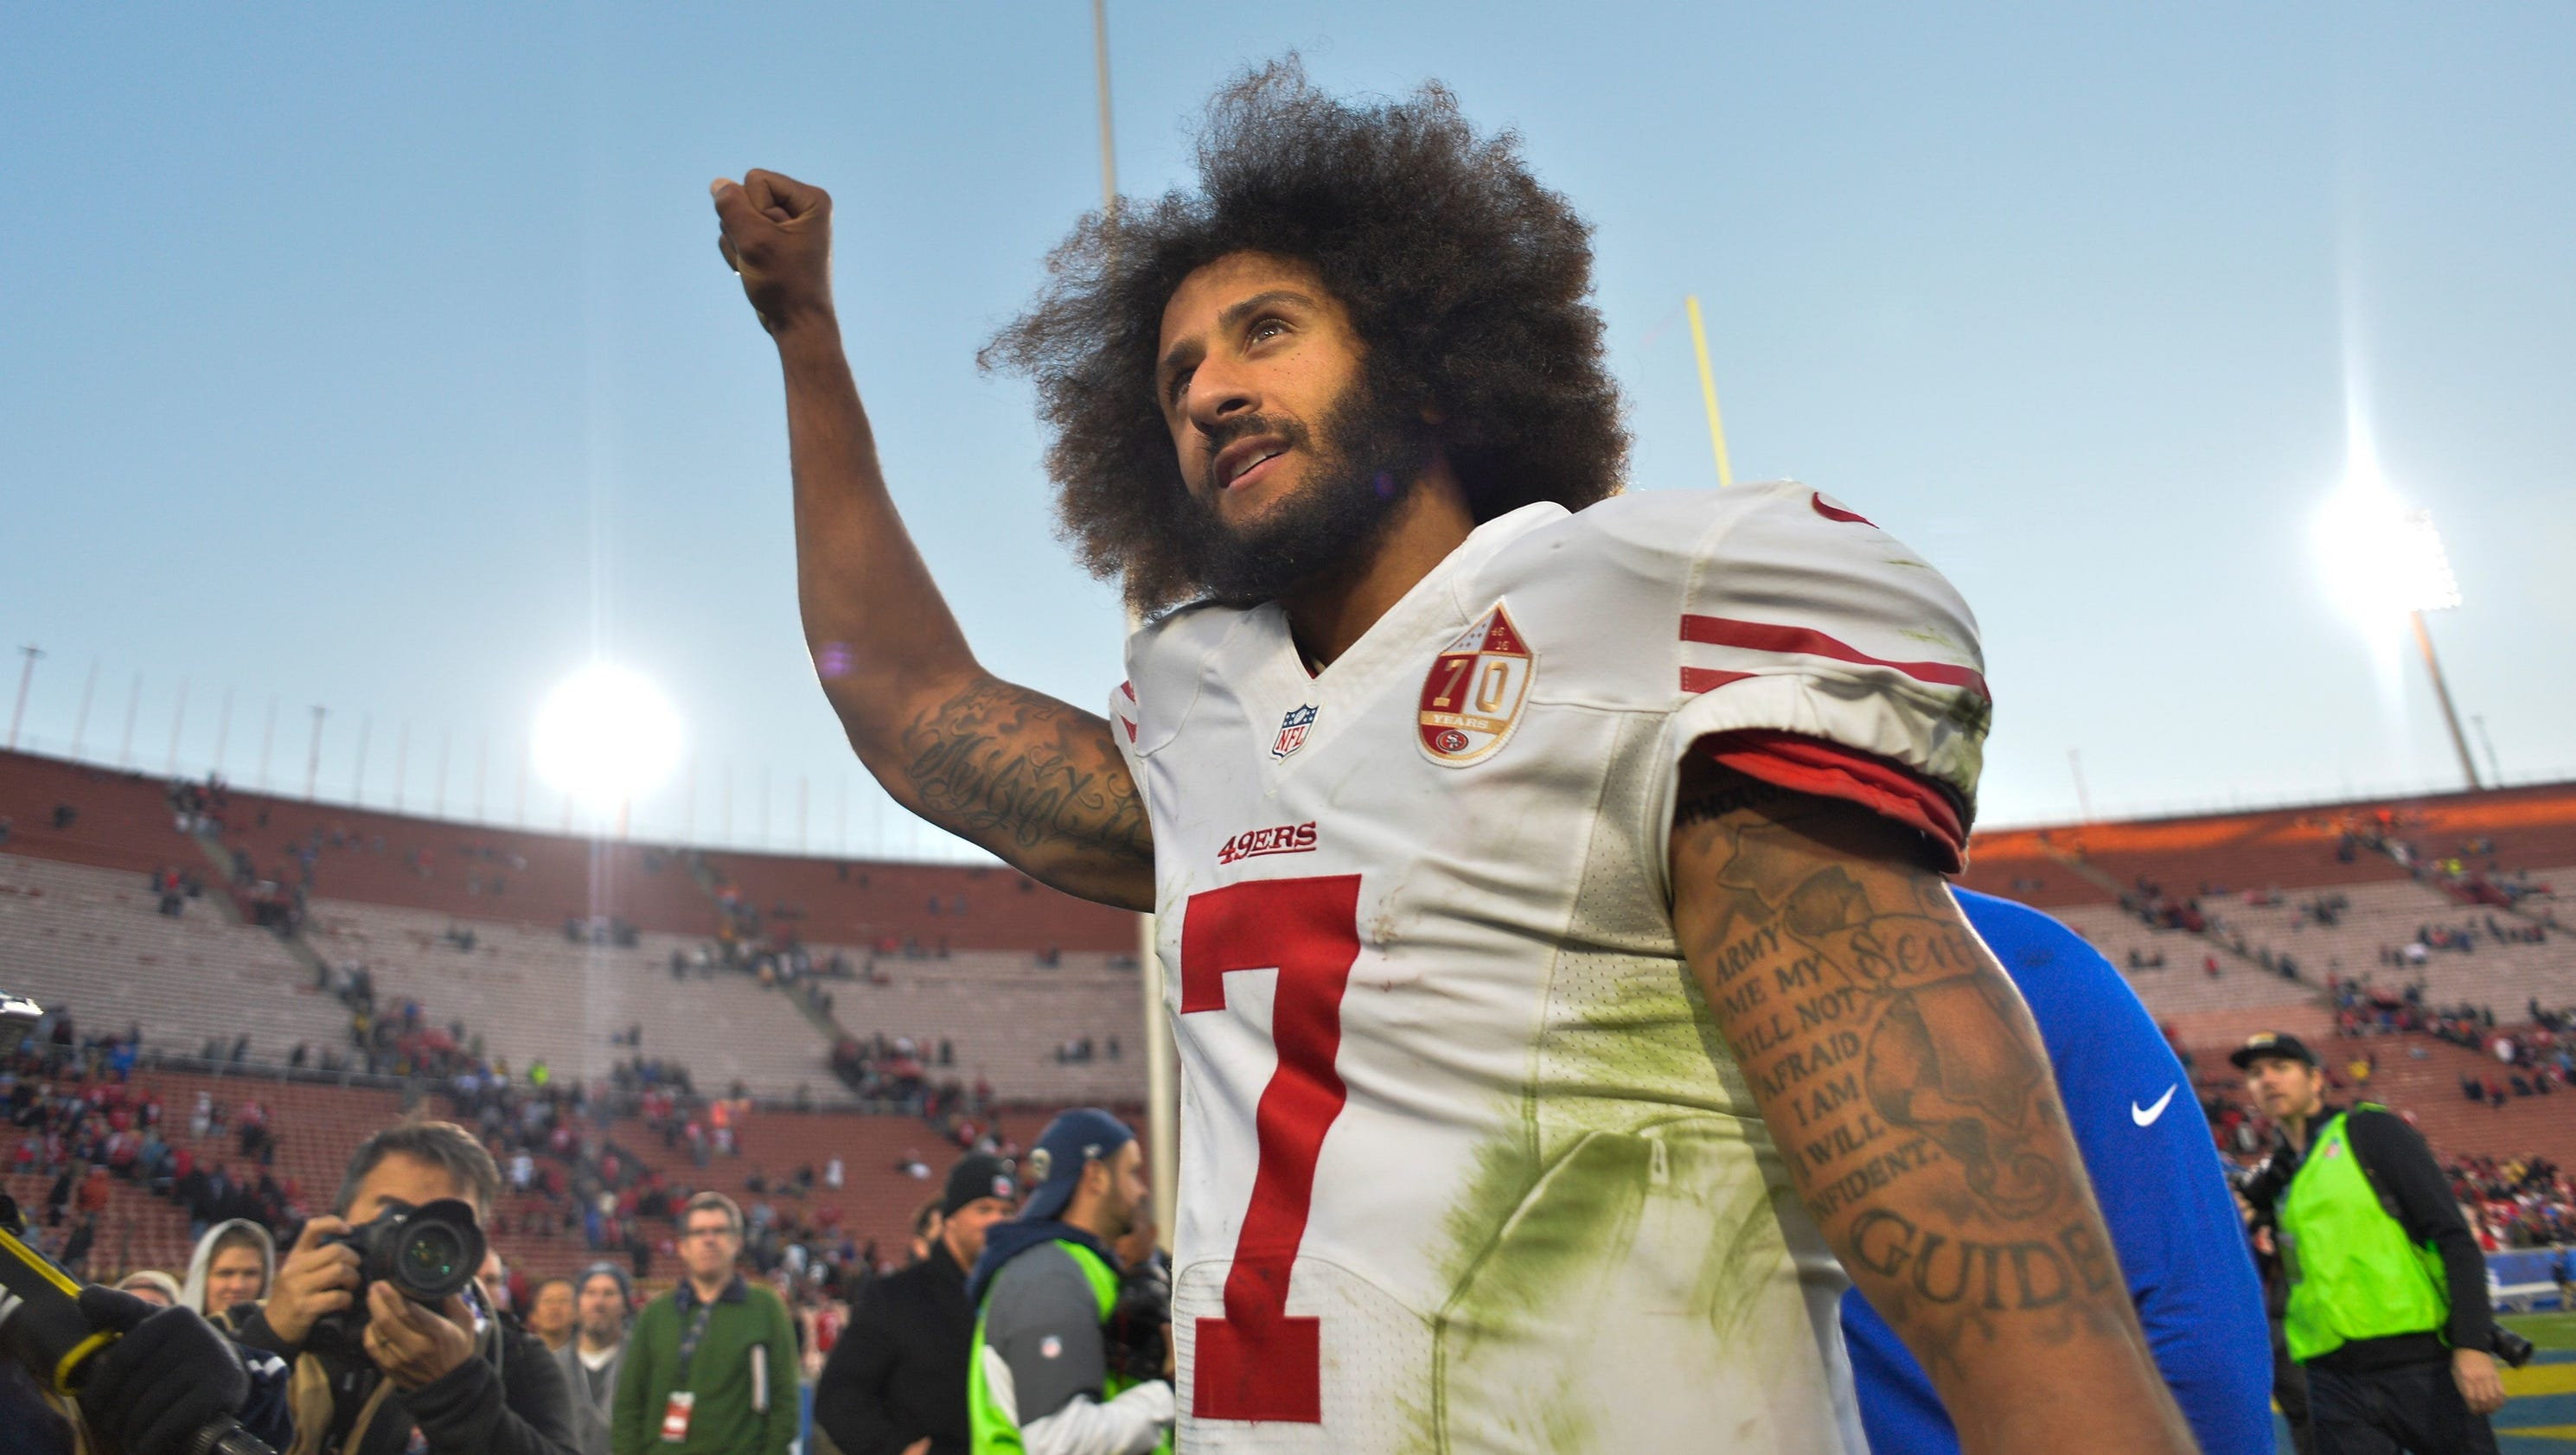 Colin kaepernick quotes jackie robinson on anthem protests m4hsunfo